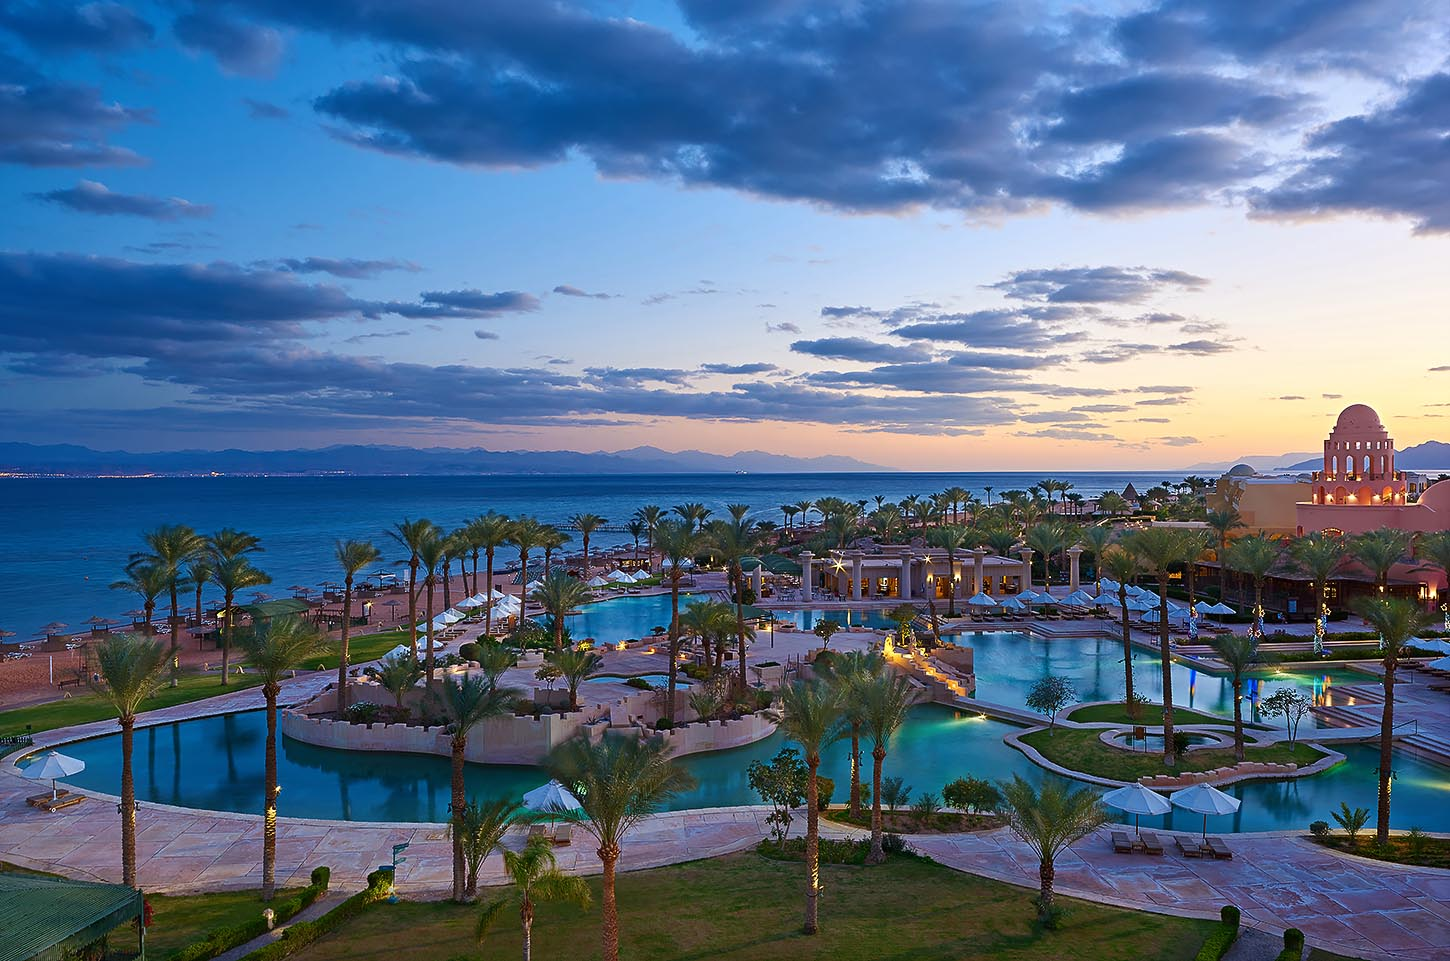 Sofitel Taba heights beach resort overview Blue hour - Mohamed Abdel-Hady photography